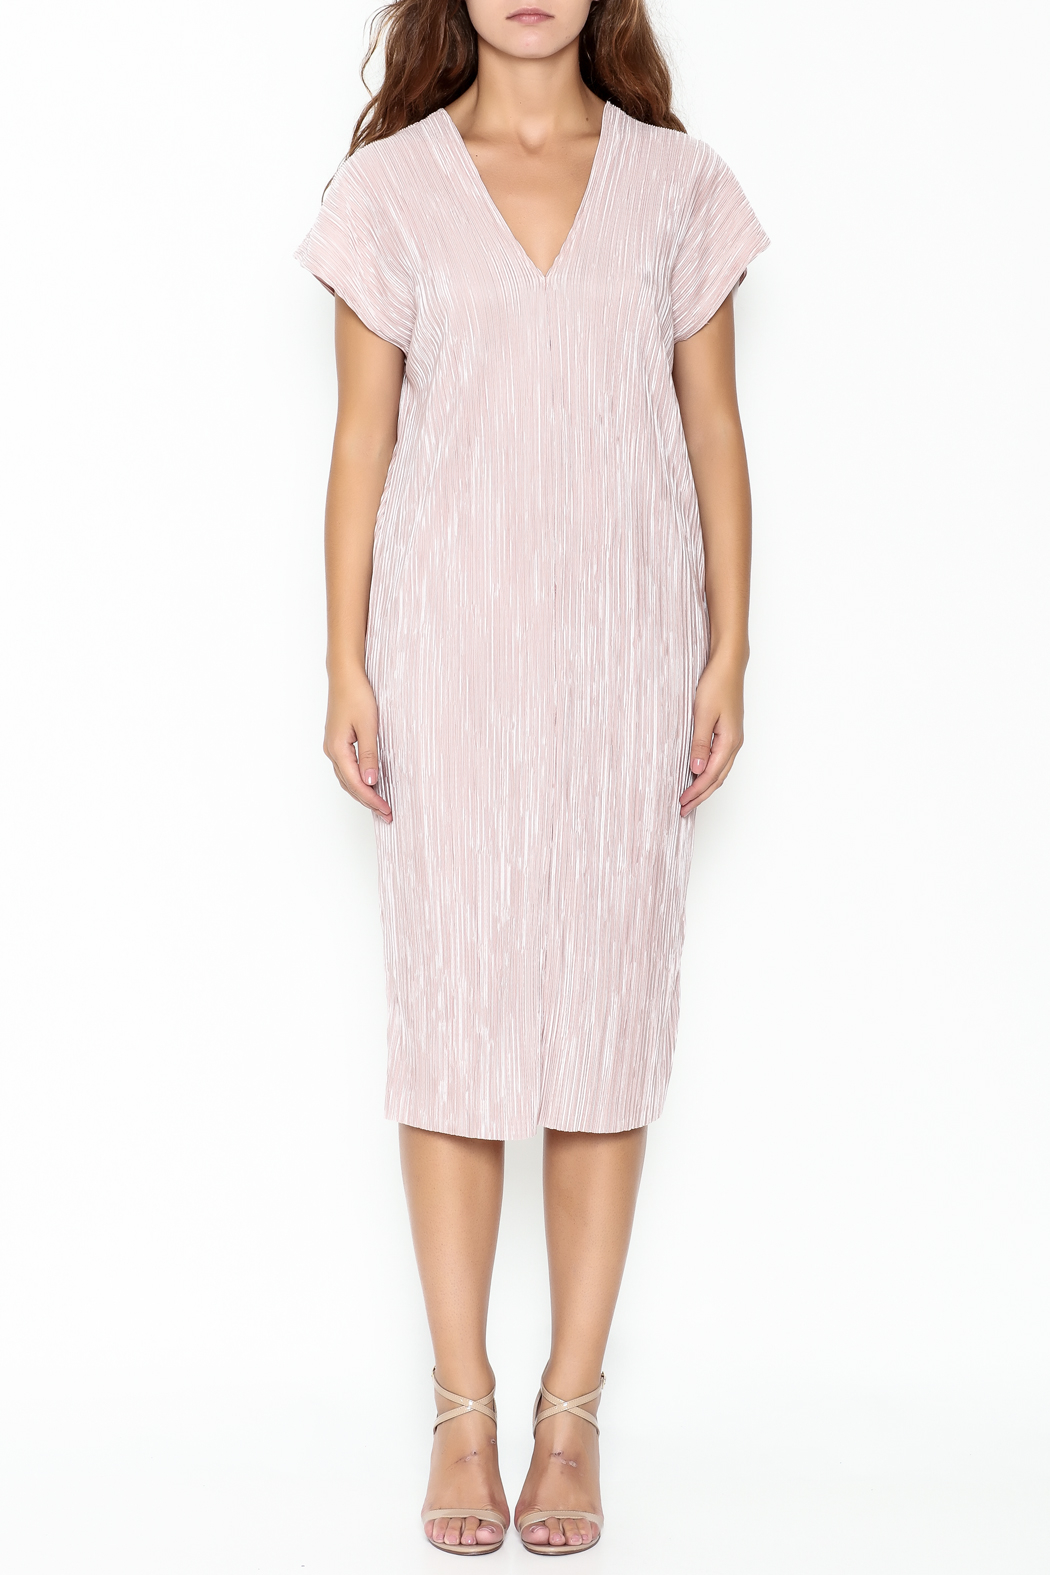 Pinkyotto Simple V Dress - Front Full Image